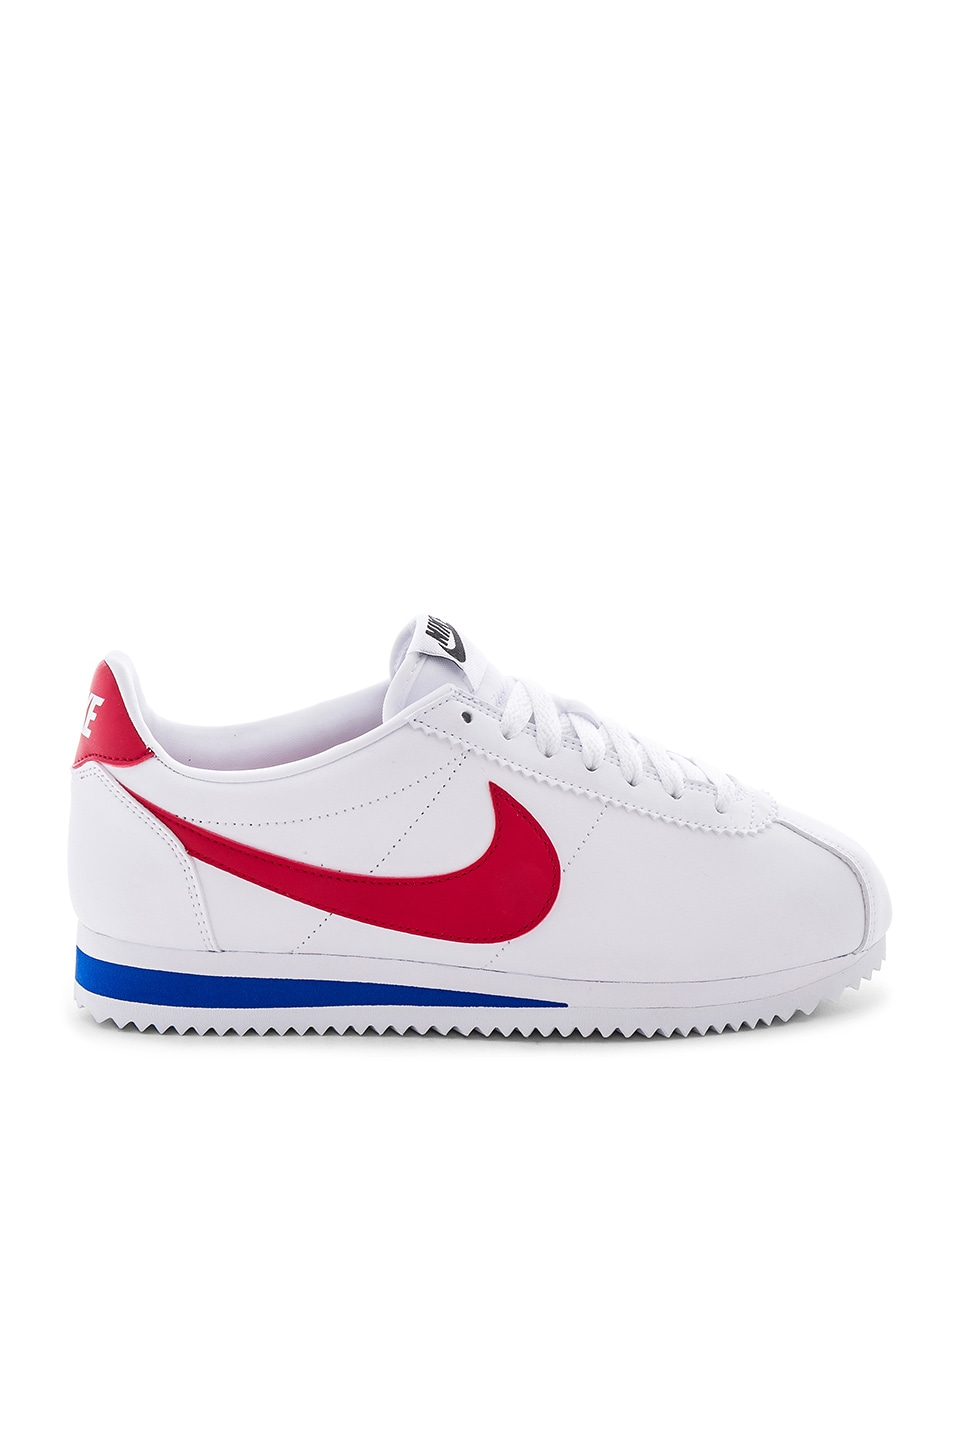 Nike Classic Cortez Leather Sneaker in White, Varsity Red & Varsity Royal